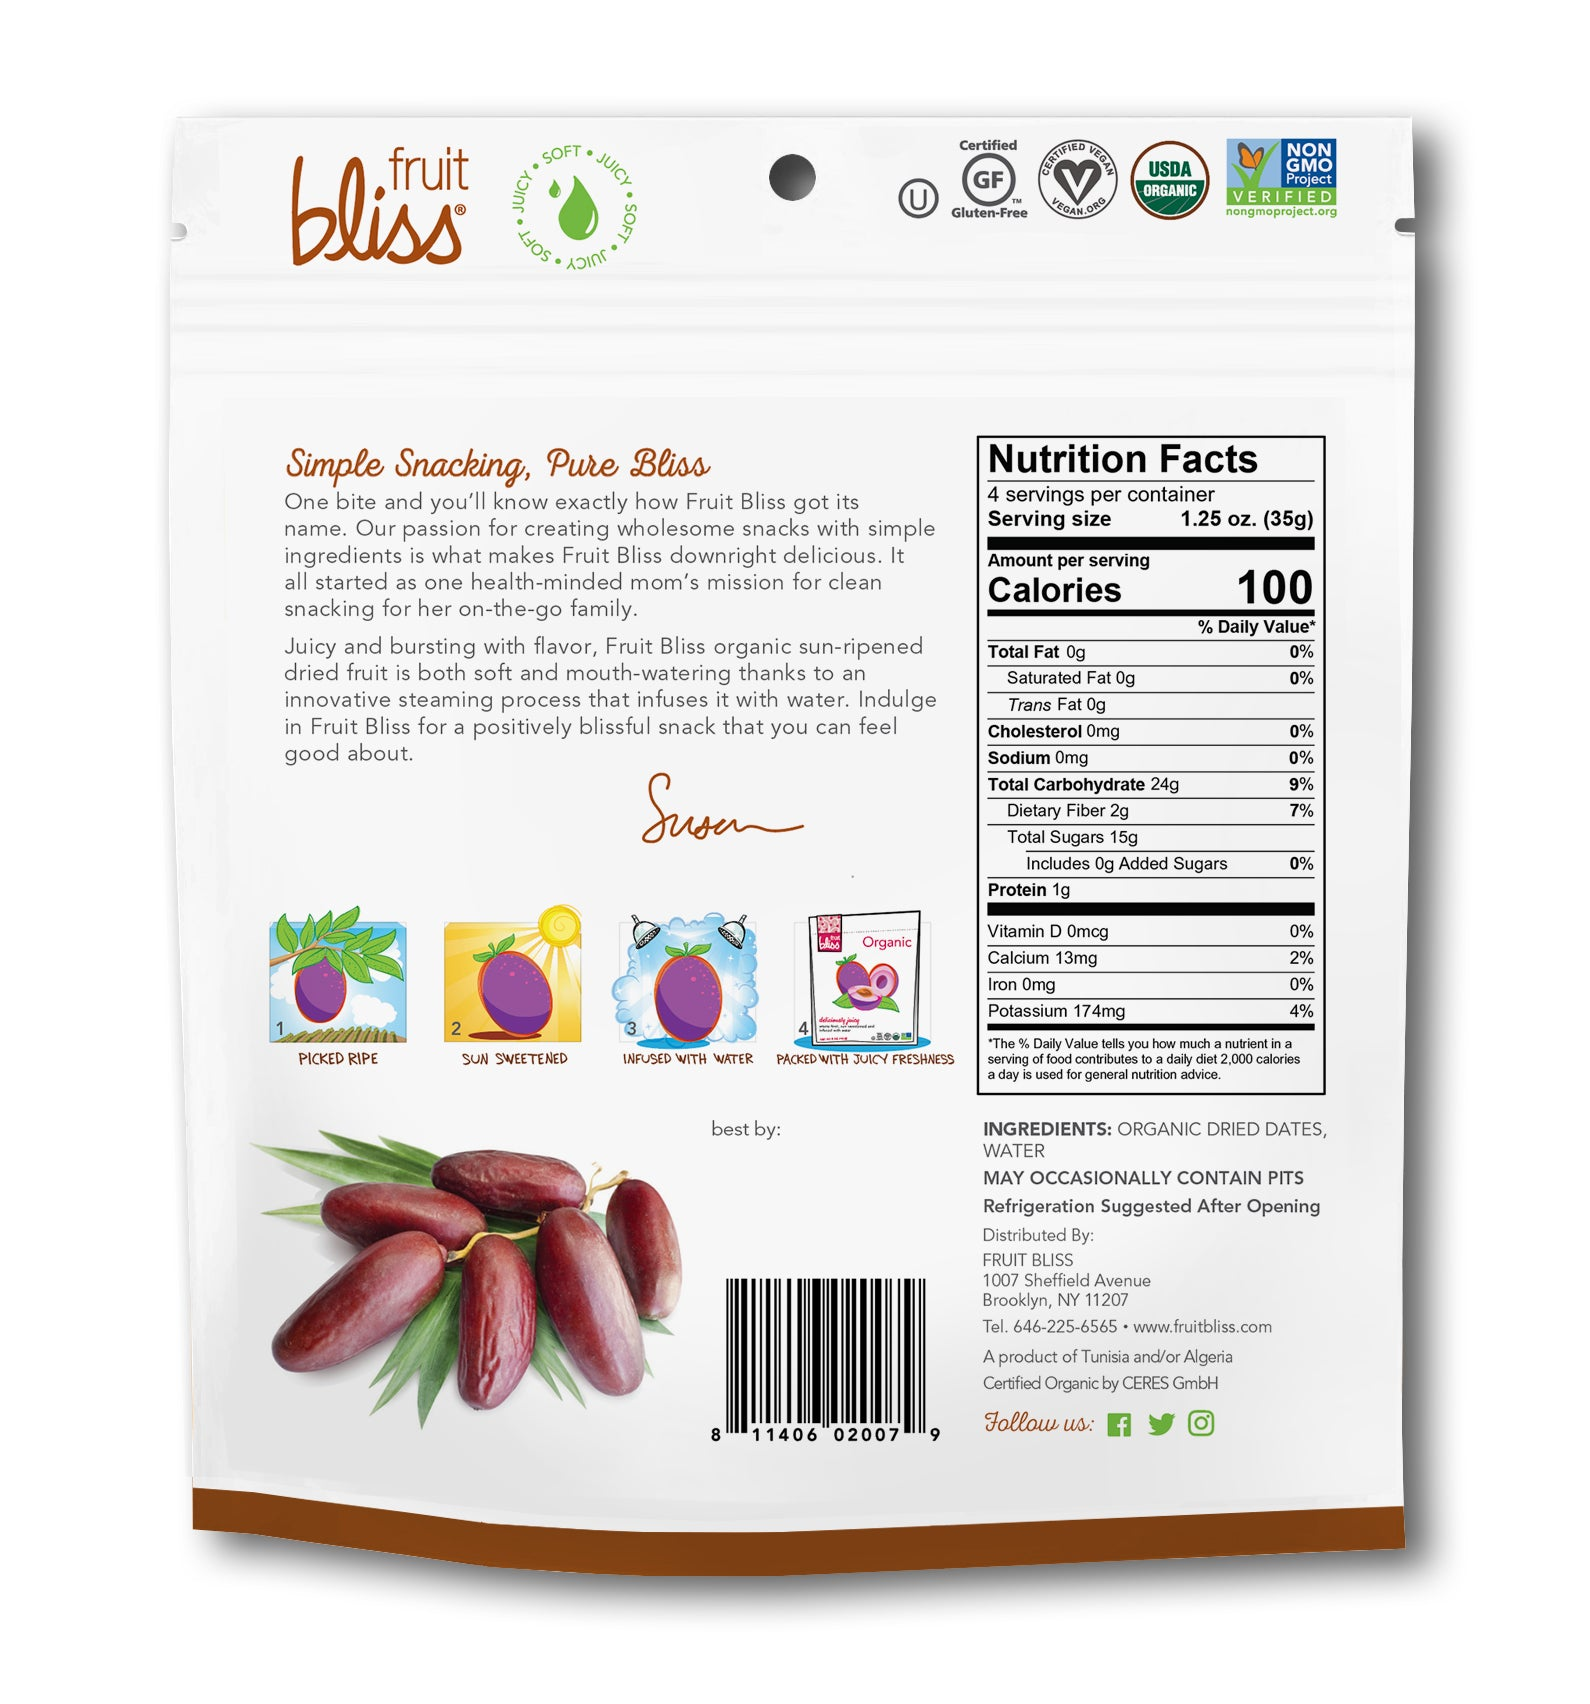 2-Pack Fruit Bliss Organic Deglet Nour Dates (5 oz. each)